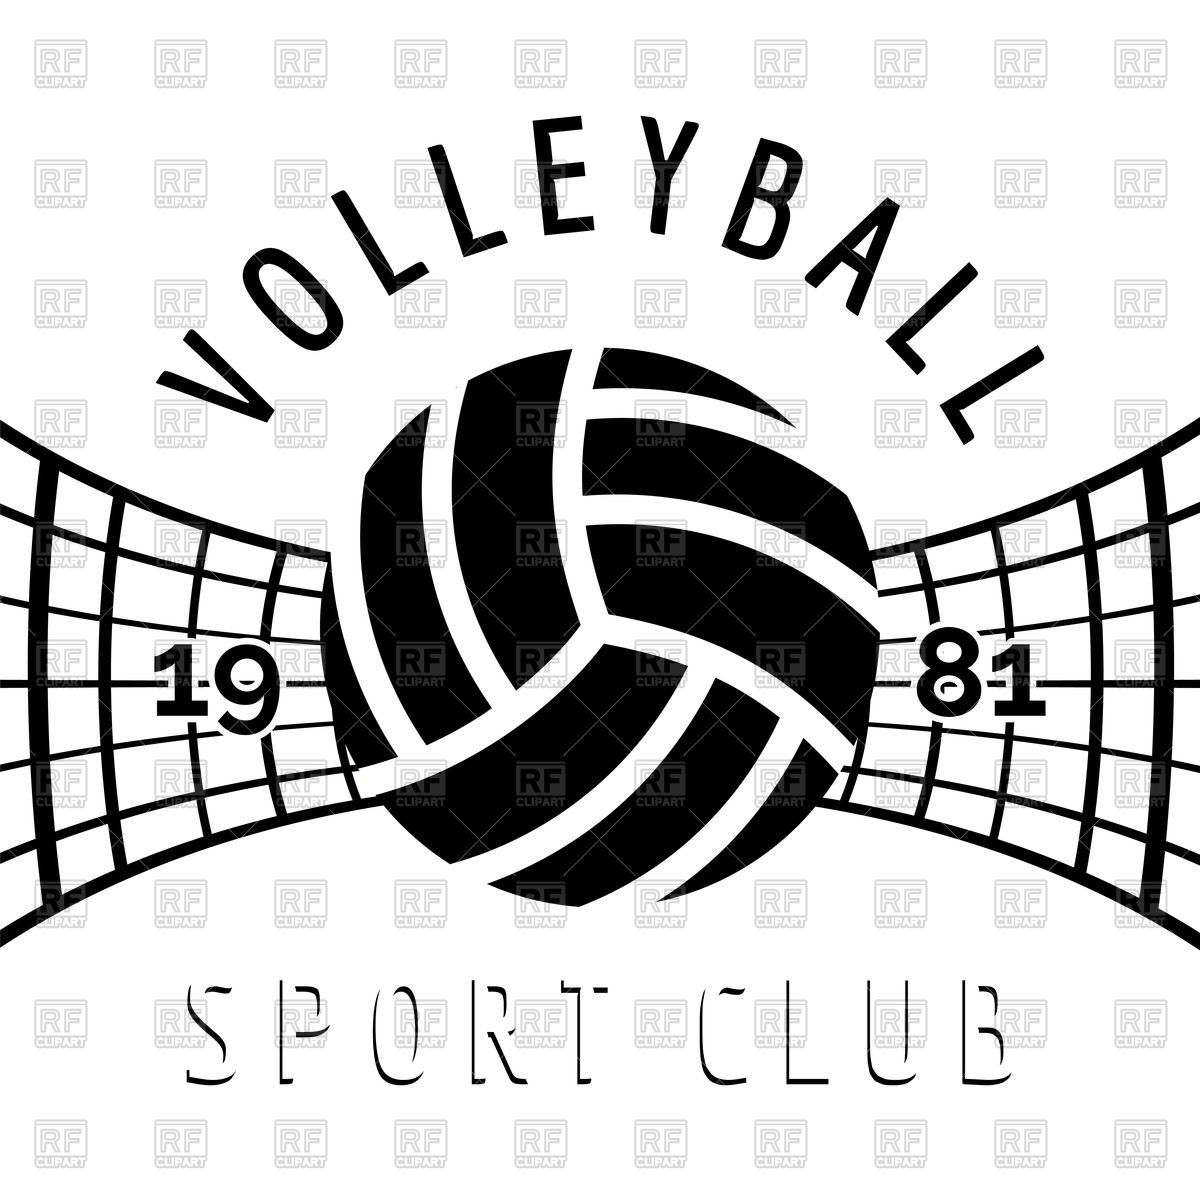 Download Royalty Free Volleyball Club Emblem On White Background Vector Image 137501 From Rfclipart Illustrations Vector Graphics Of Volle With Images Volleyball Wallpaper